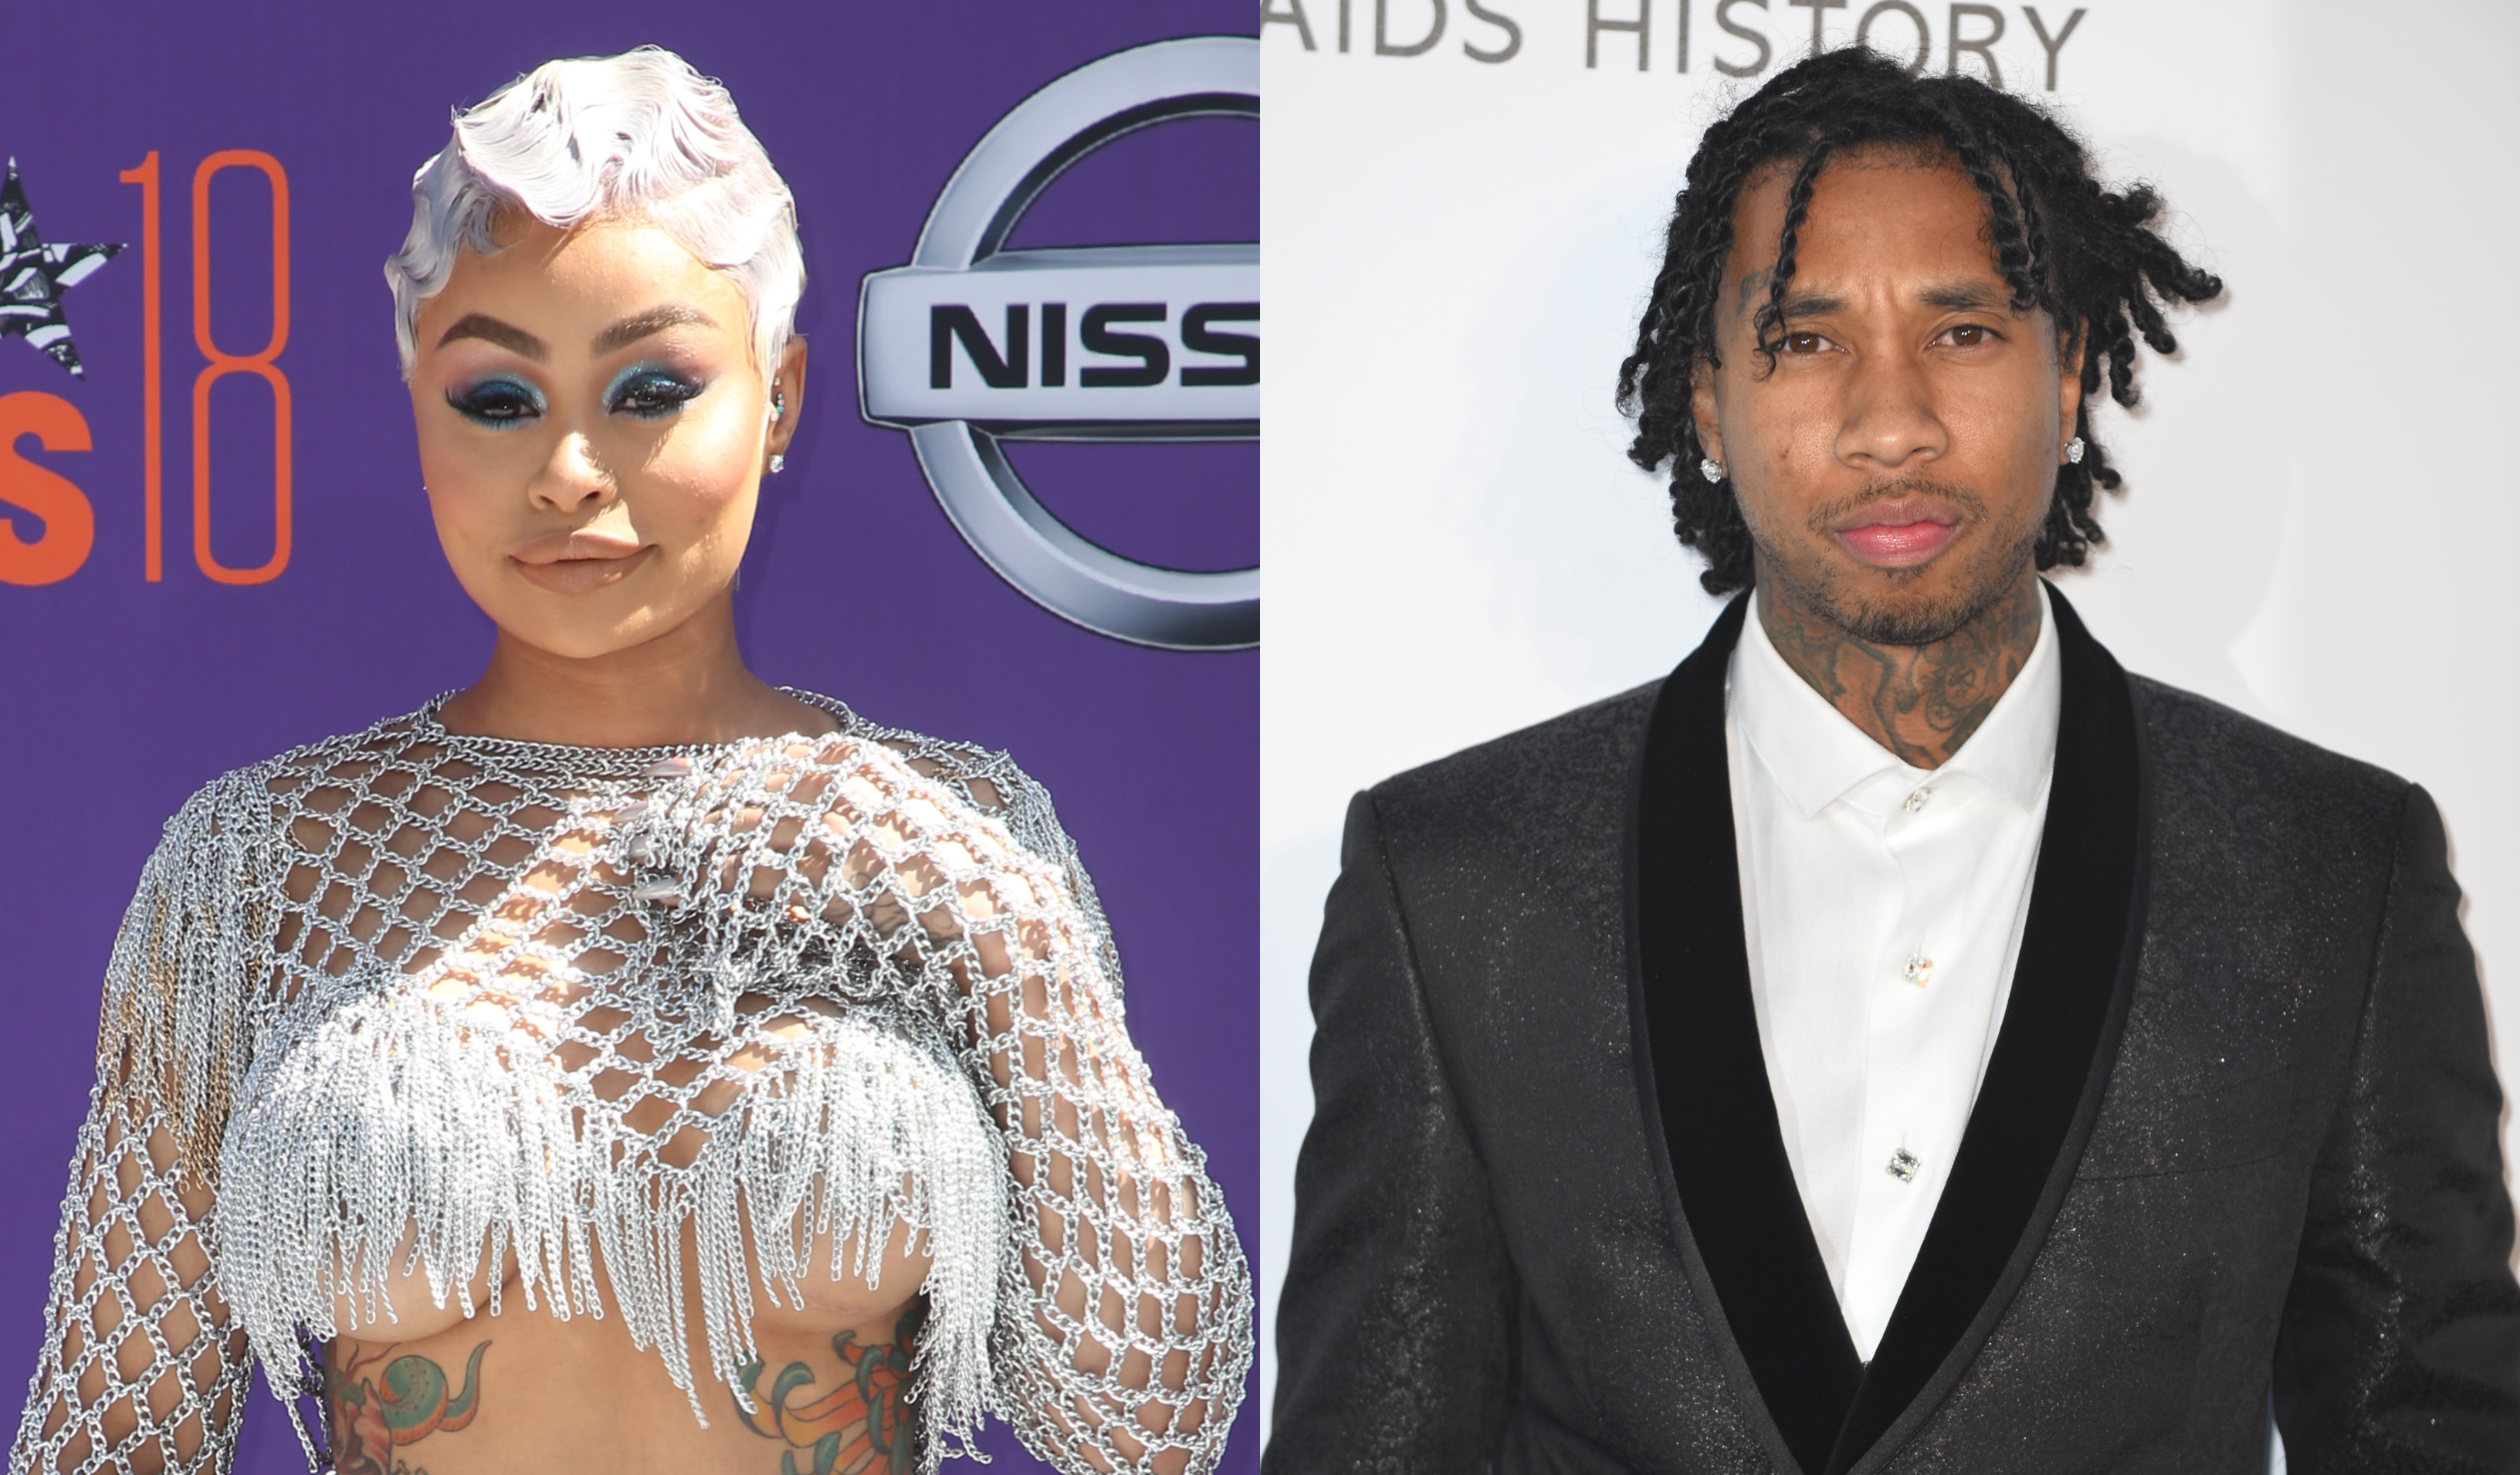 Blac Chyna and Tyga reunite 4 years after their split. (Photo: WENN)